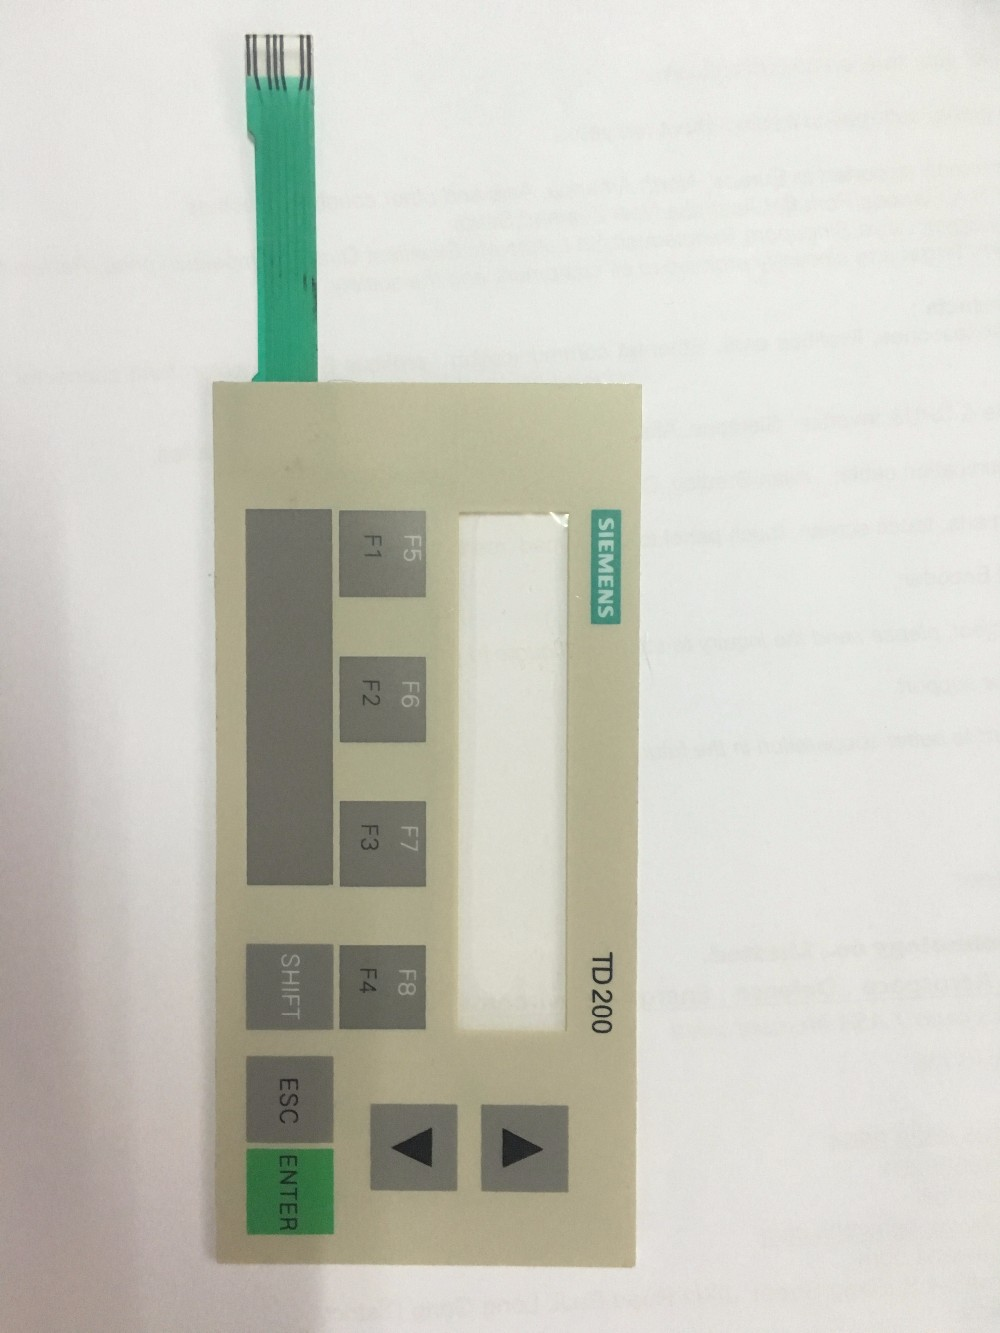 6AG1272-0AA30-2YA1,6AG1 272-0AA30-2YA1,TD200 Membrane Switch Keypad for repair, Fast Shipping membrane keypad for beijer e600 repair new 100% fast shipping